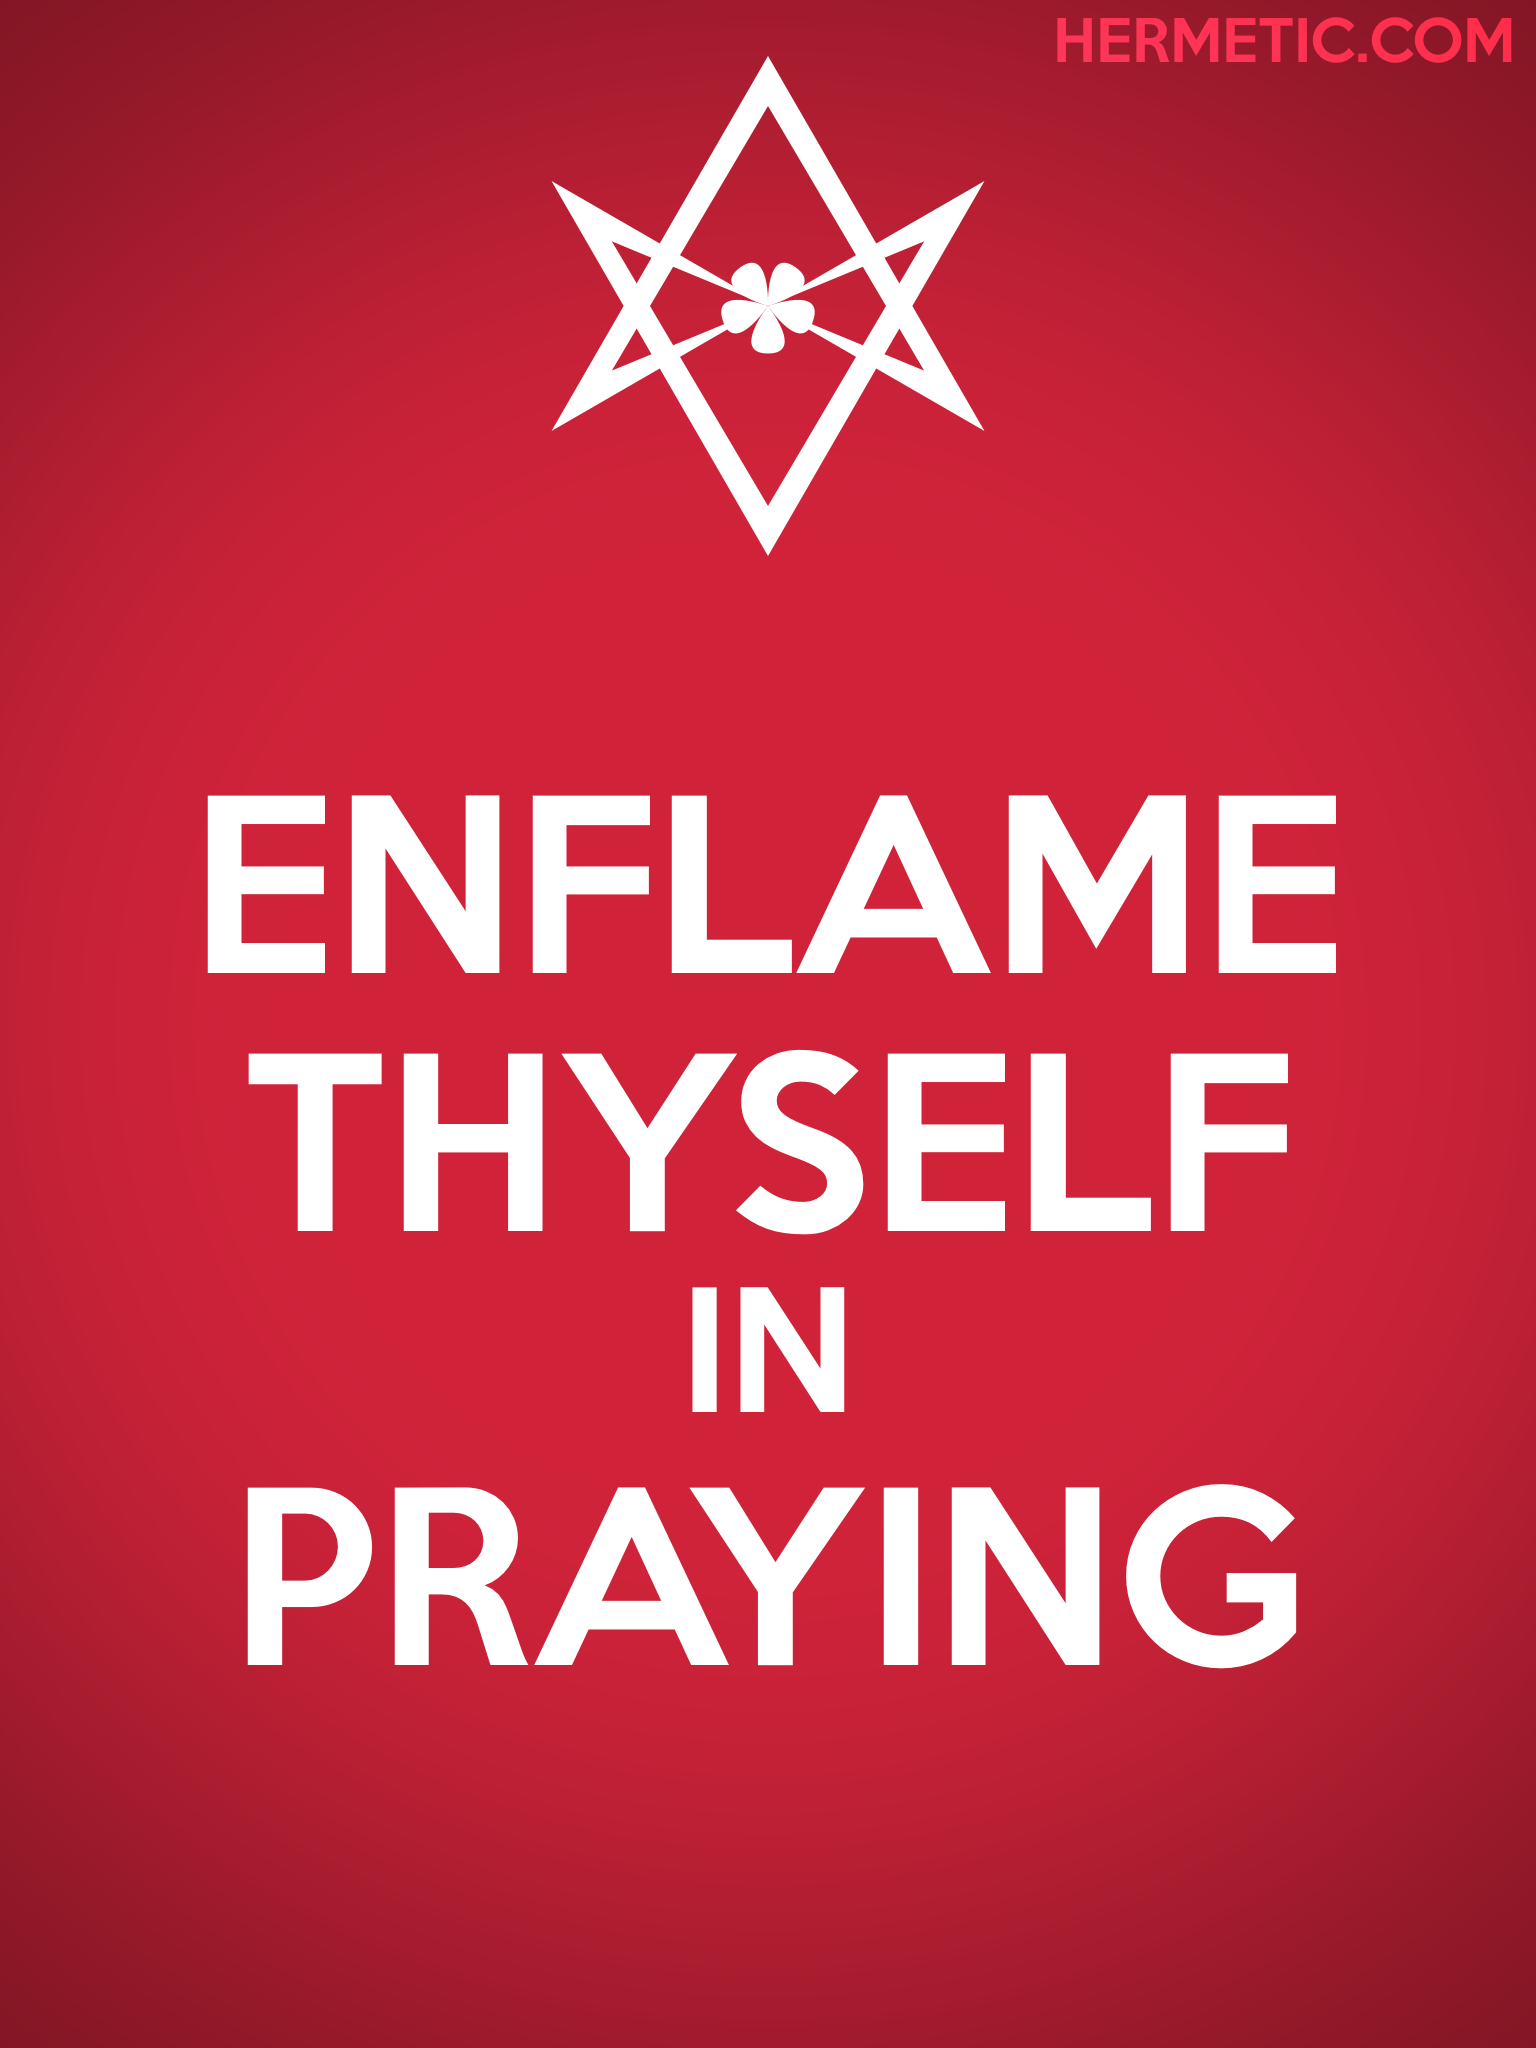 Unicursal ENFLAME THYSELF IN PRAYING Propaganda Poster from Hermetic Library Office of the Ministry of Information